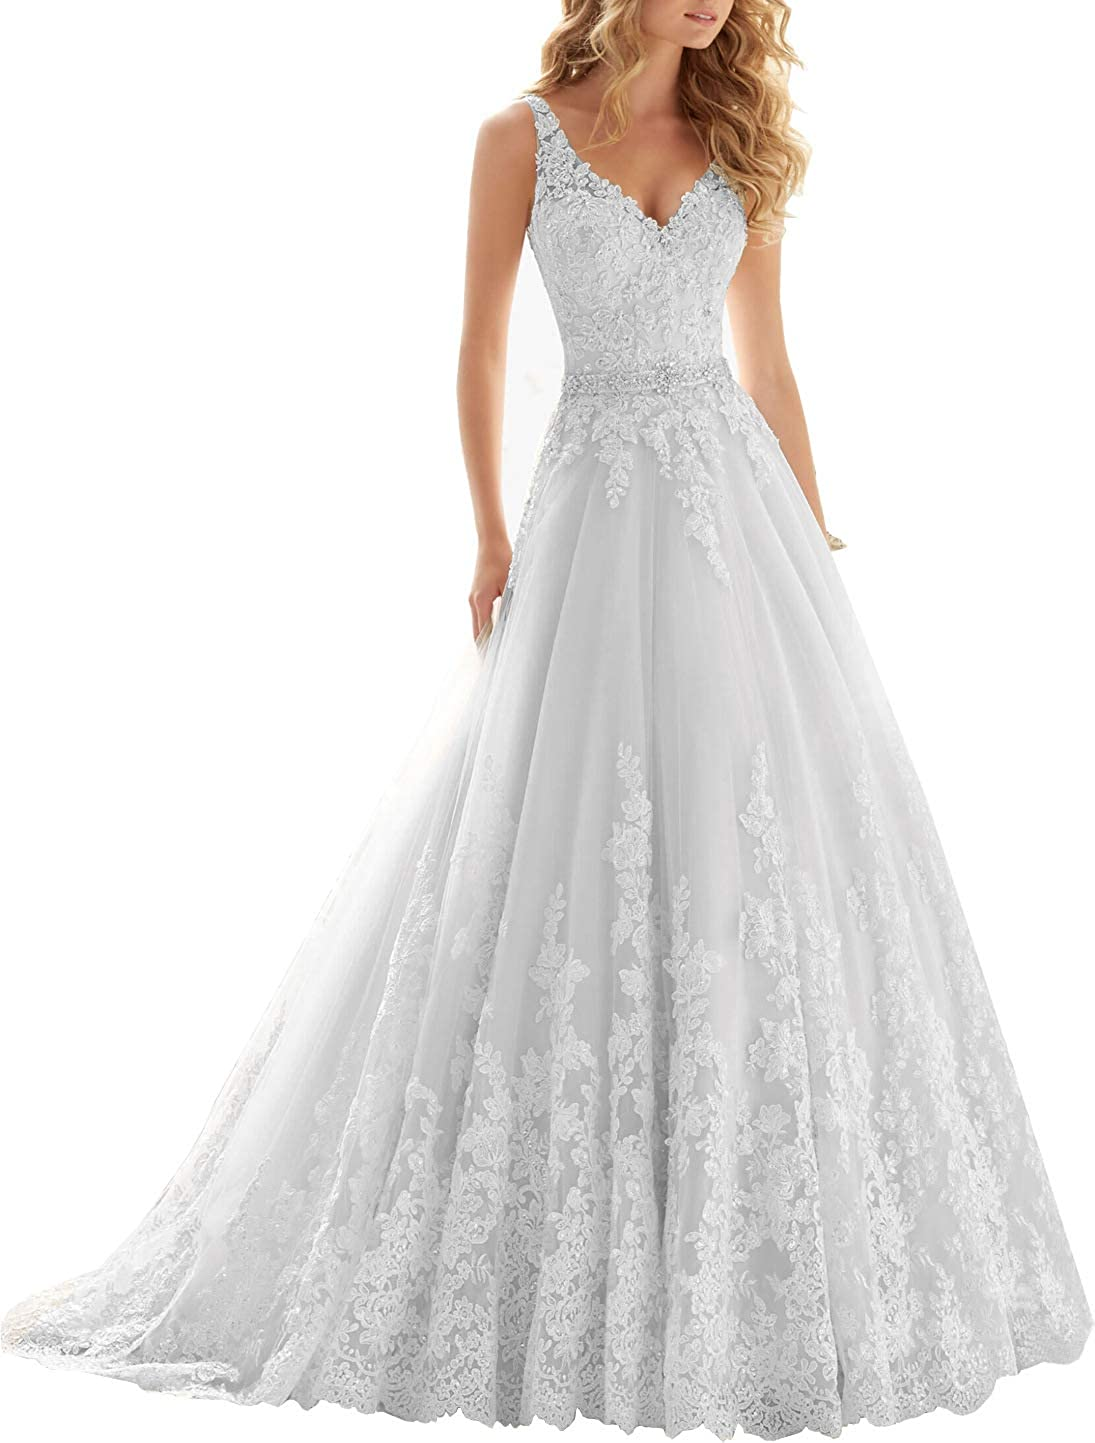 Lace Appliques Wedding Dresses for Bride V Neck Beaded Straps Bridal Gown Long 2021 for Women